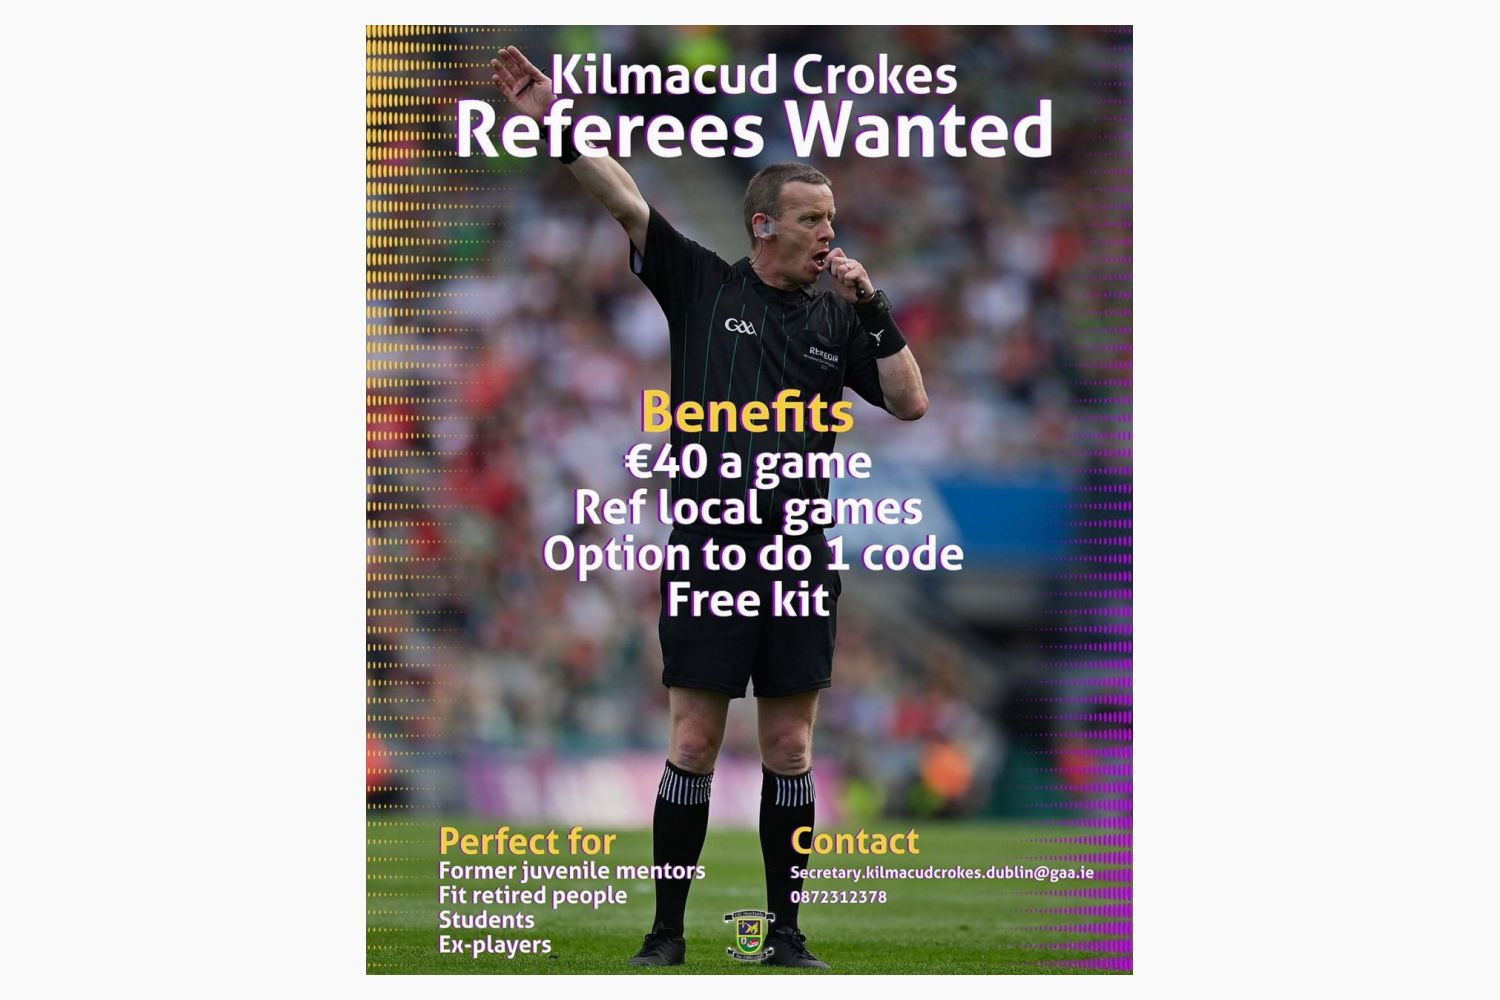 Referees Wanted!